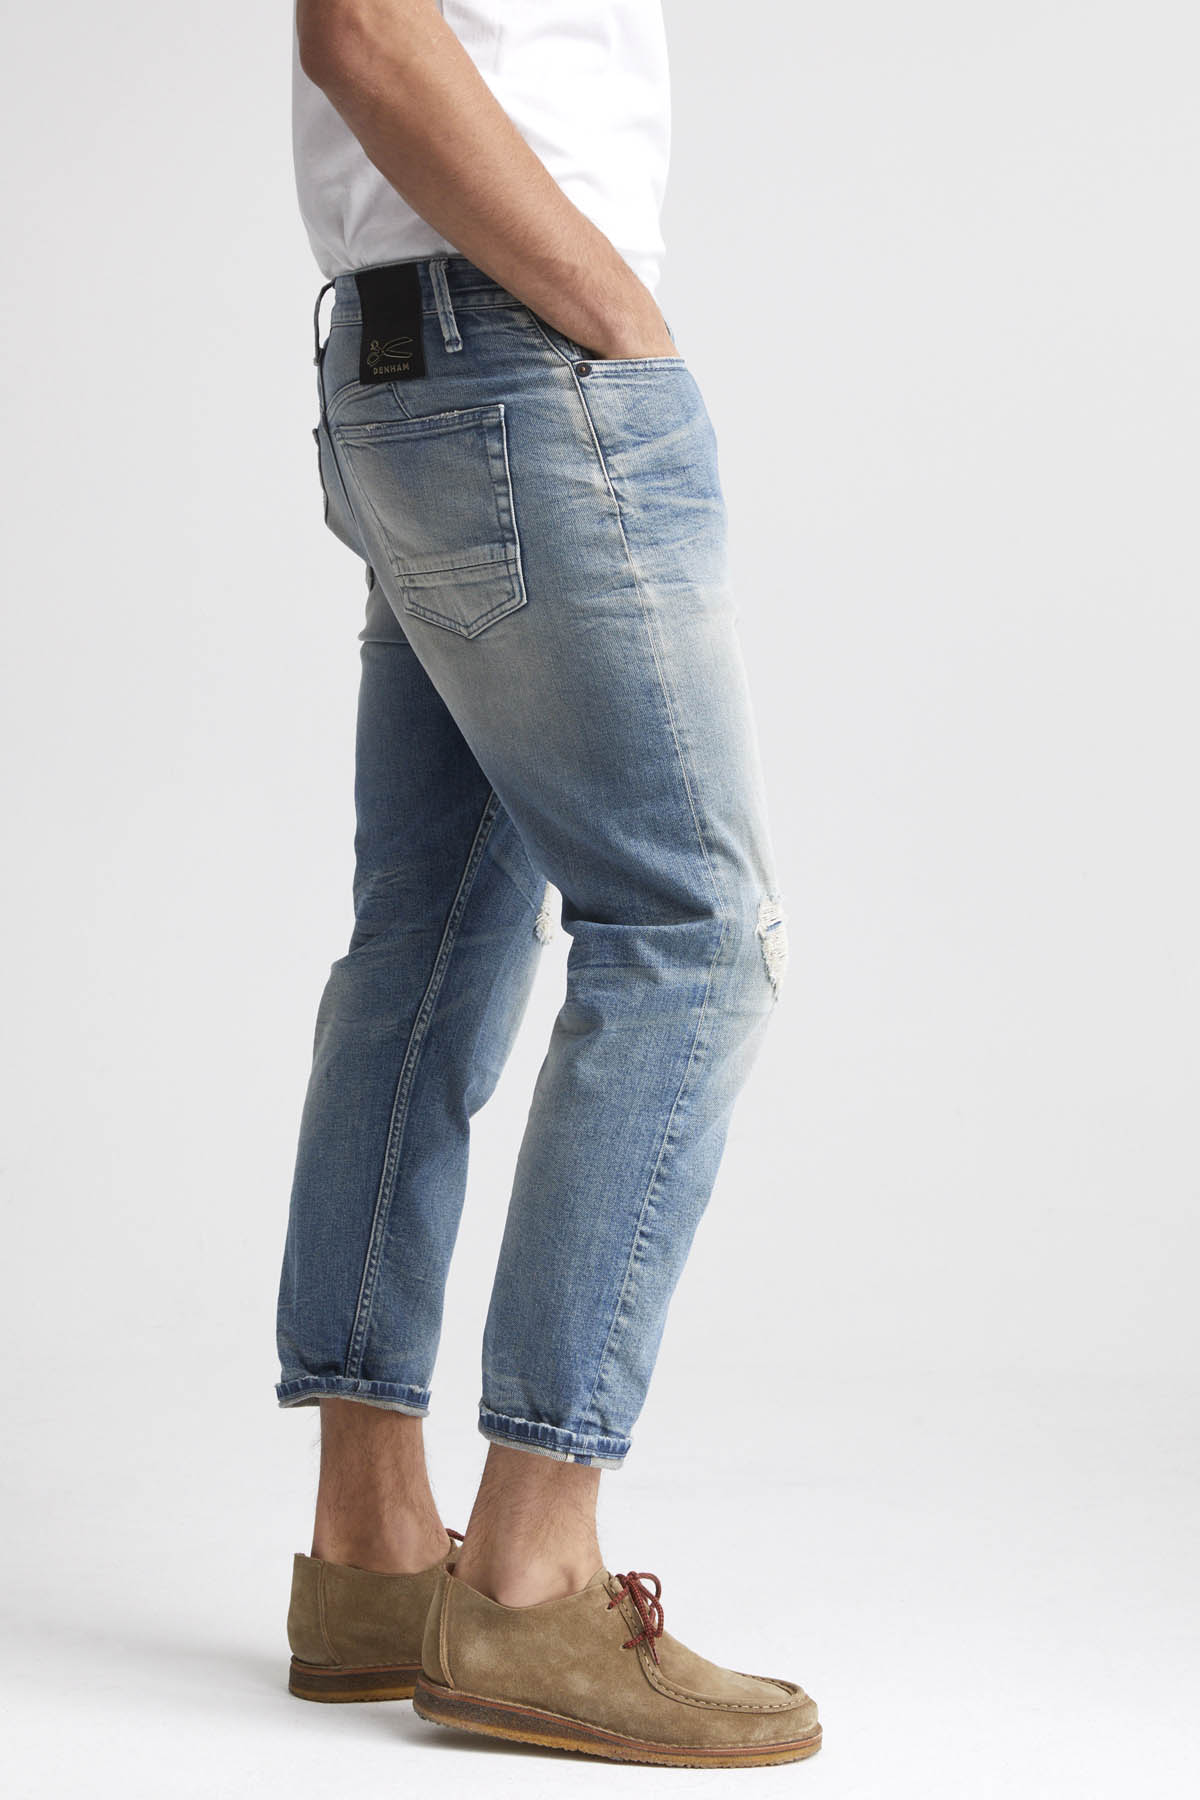 Crop - Low Crotch Cropped Fit Jeans - Back